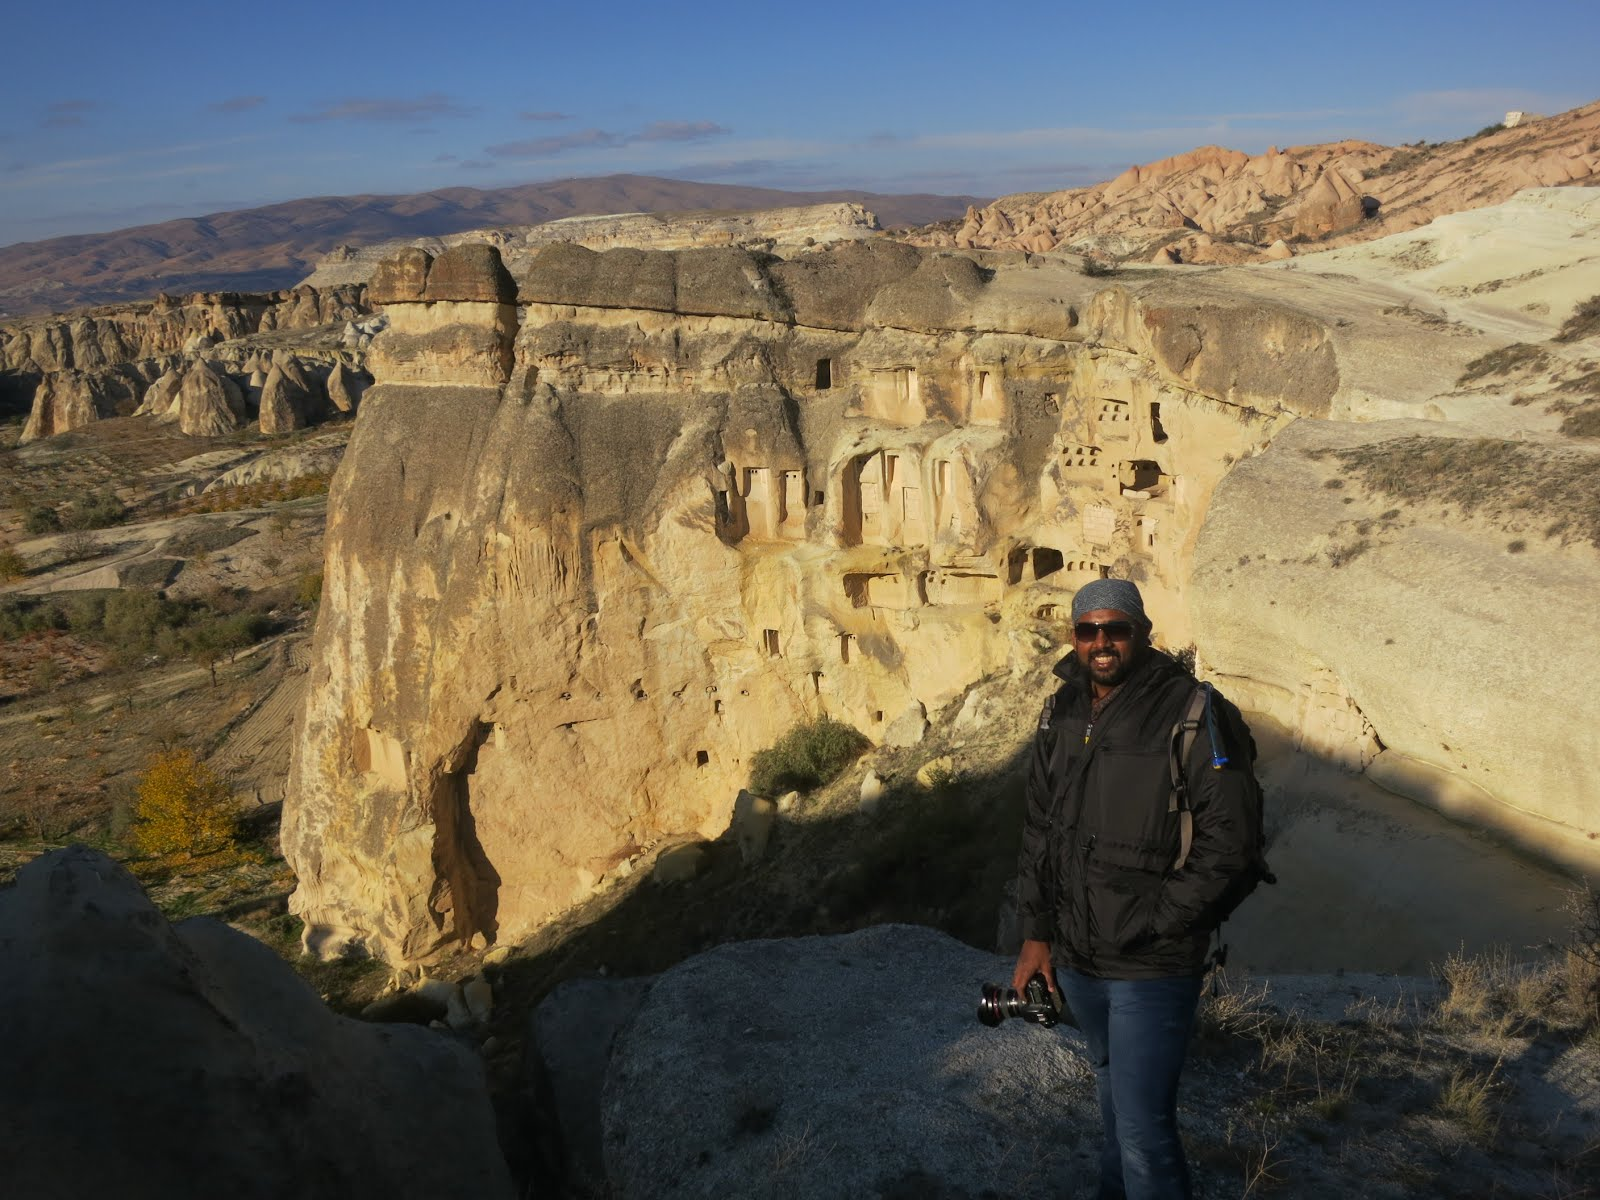 Posing in front of the Cappadocia ancient living quarters